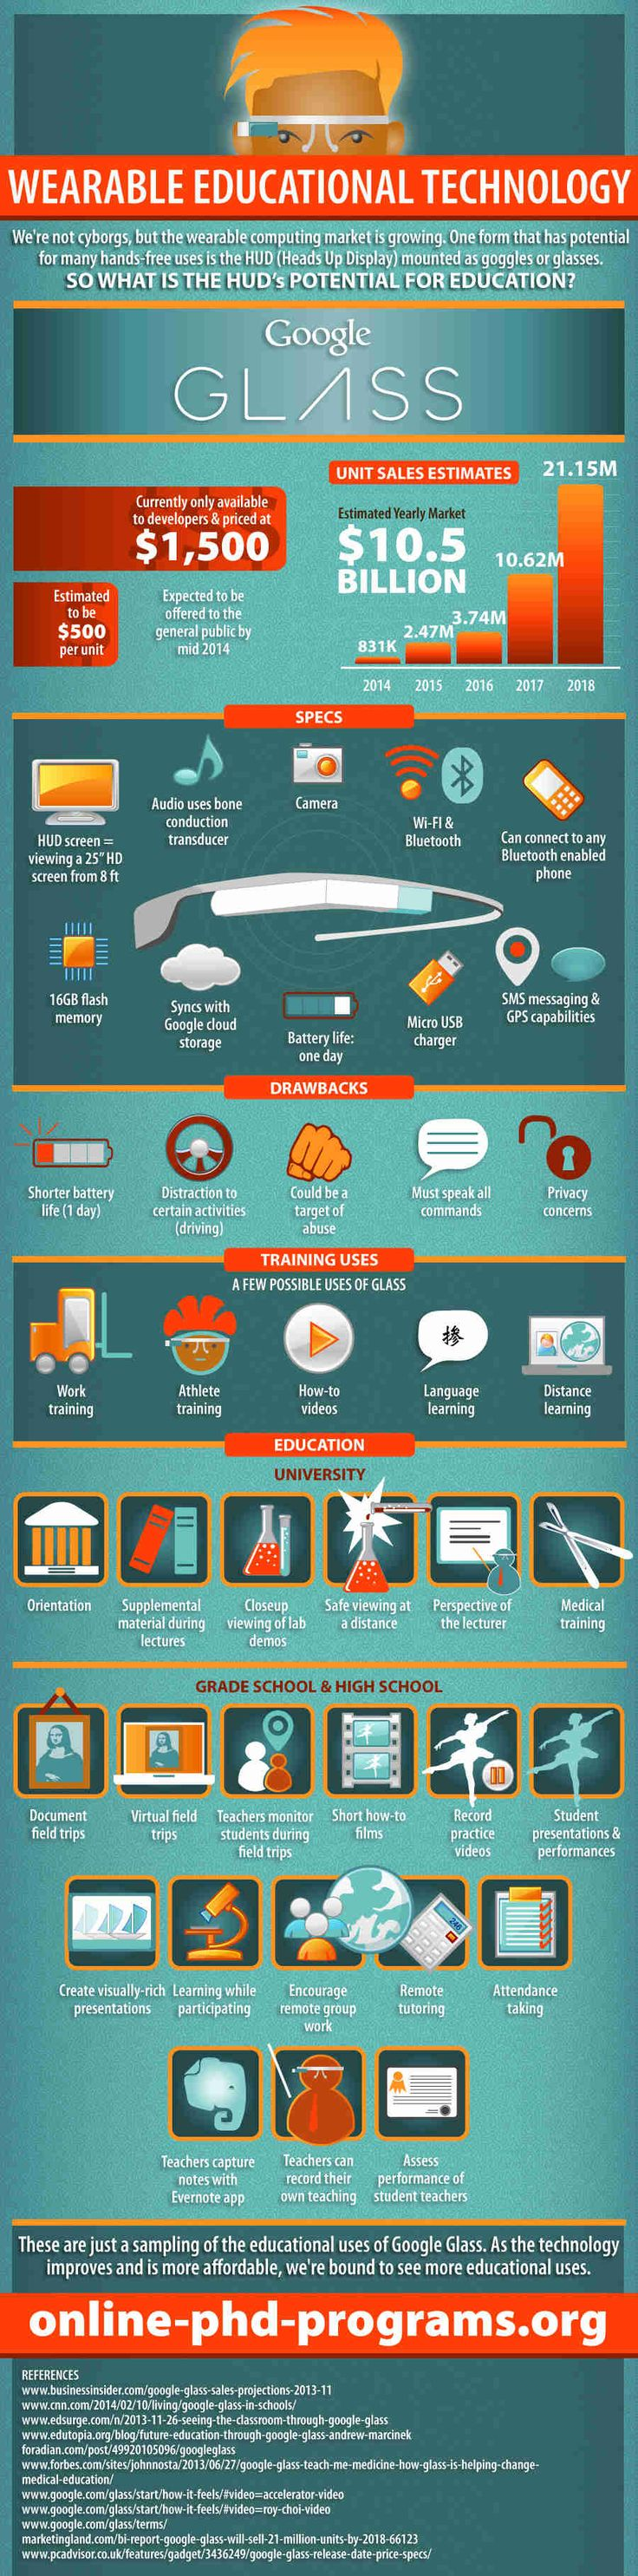 Wearable Technologies Infographic – These types of wearables already e in a variety of shapes and